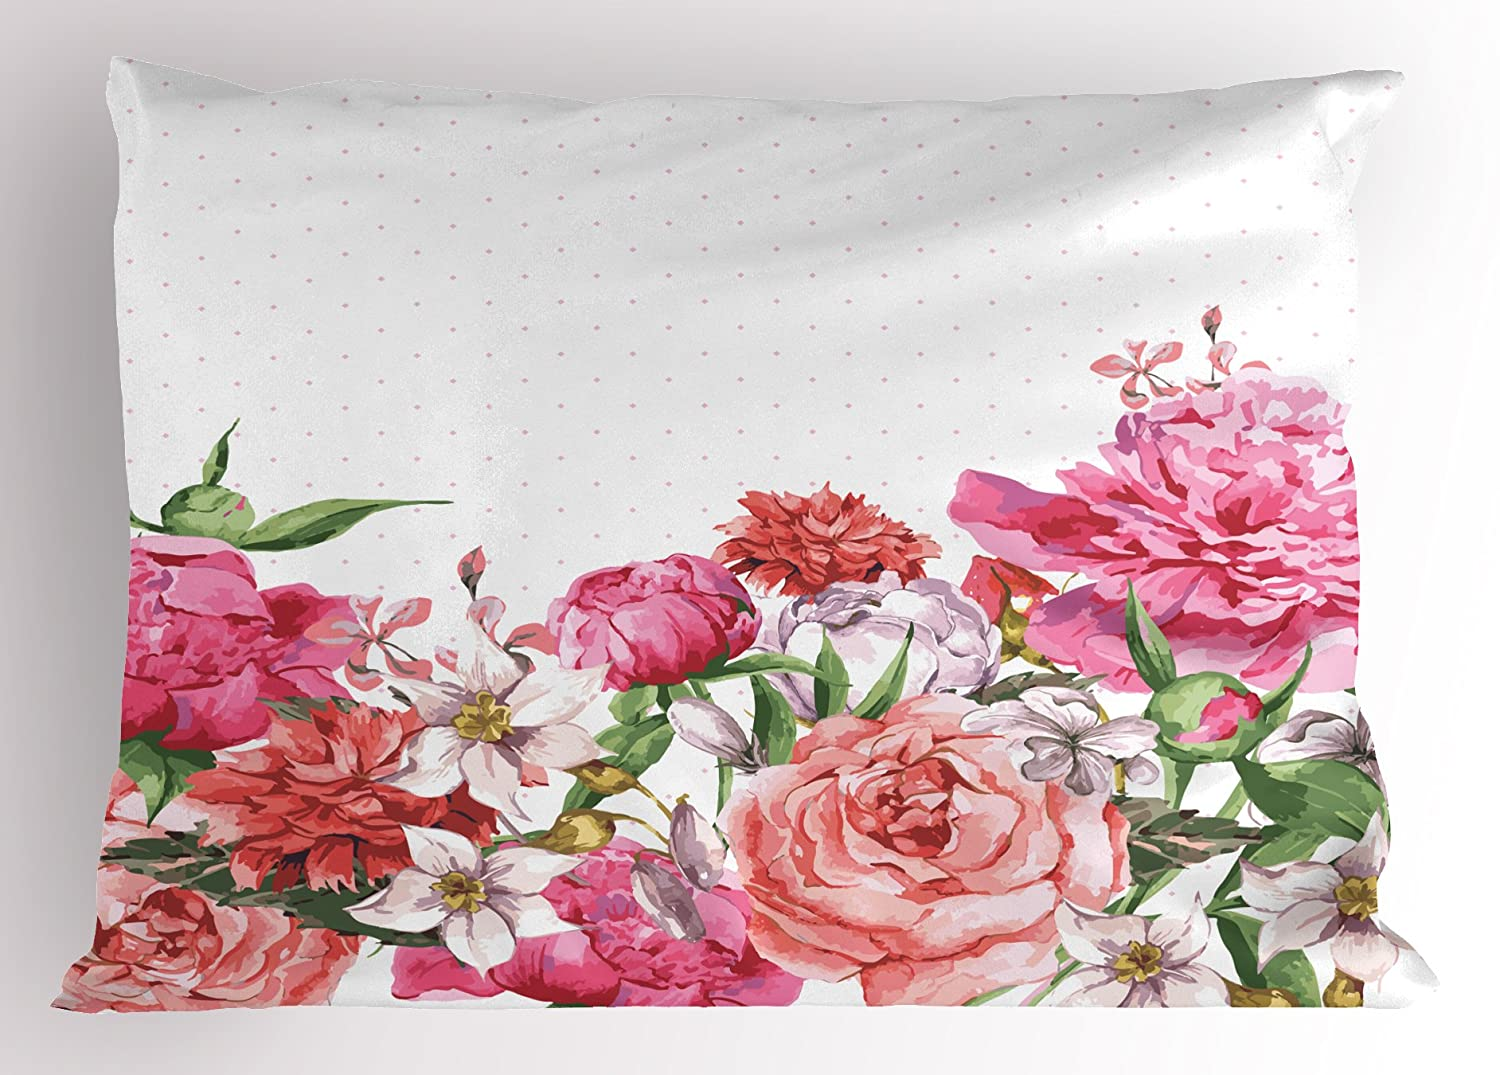 Ambesonne Floral Pillow Sham by, Blooms Bouquet Botany Rose Peony Wild Lily Love Watercolor Art, Decorative Standard Queen Size Printed Pillowcase, 30 X 20 Inches, Hot Pink Dark Coral Hunter Creen